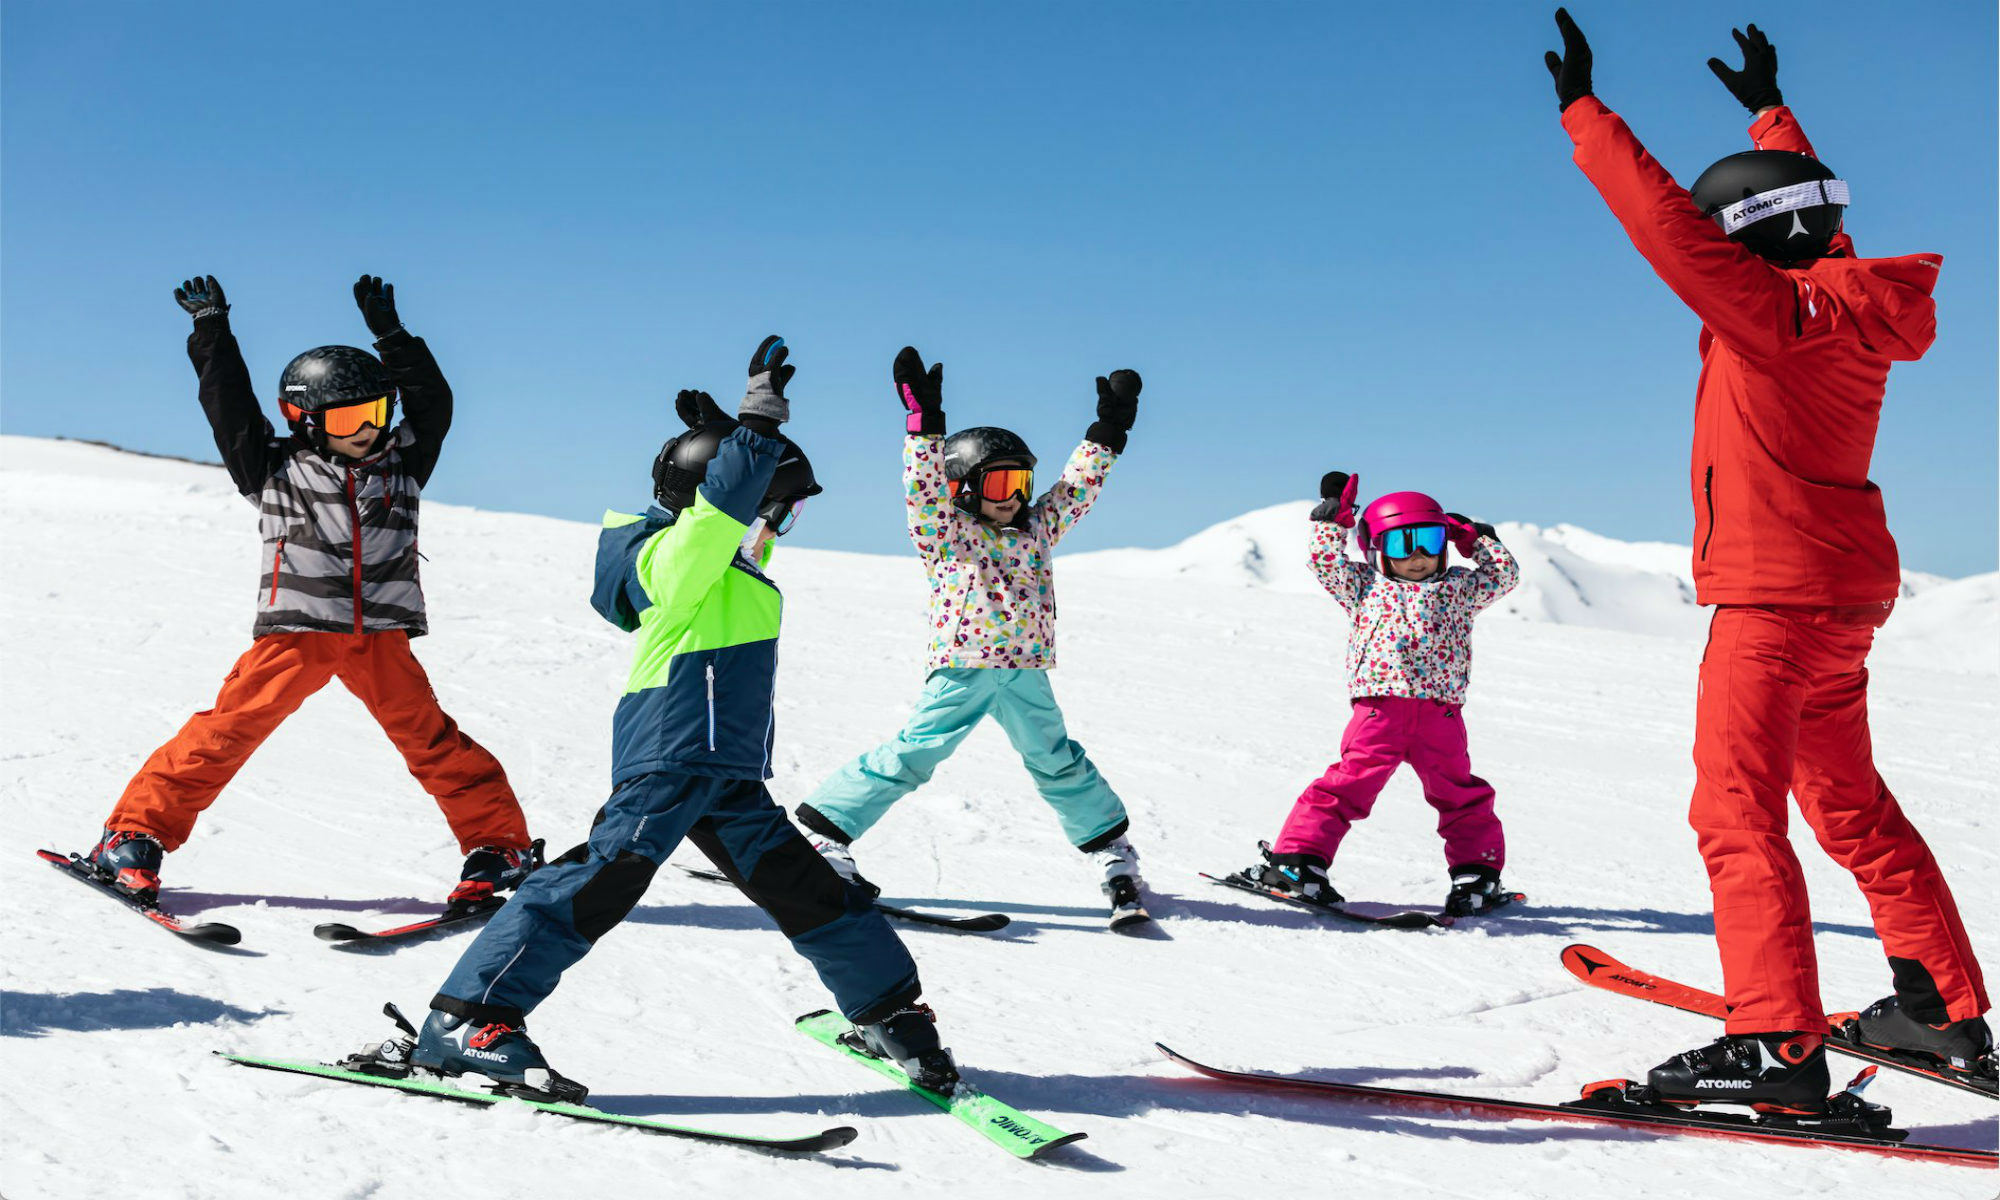 Andorra skiing: Fully inclusive learn to ski holiday in Arinsal